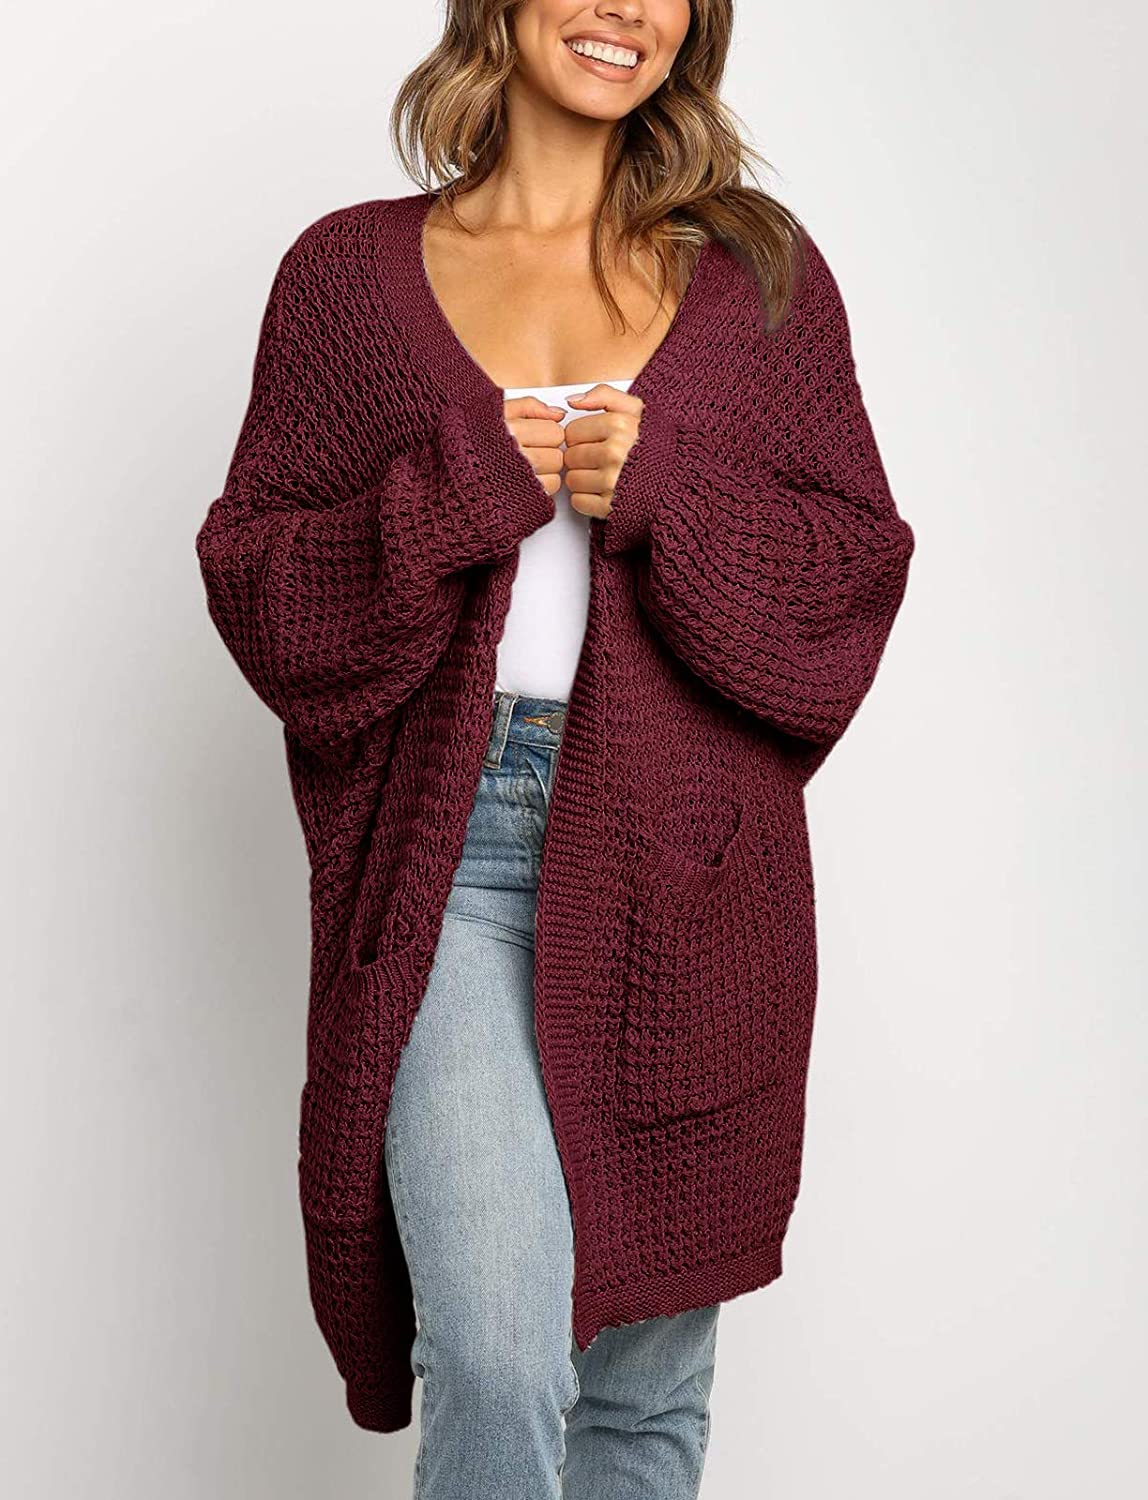 UEU Womens Long Batwing Sleeve Open Front Chunky Knit Cardigan Sweater with Pockets